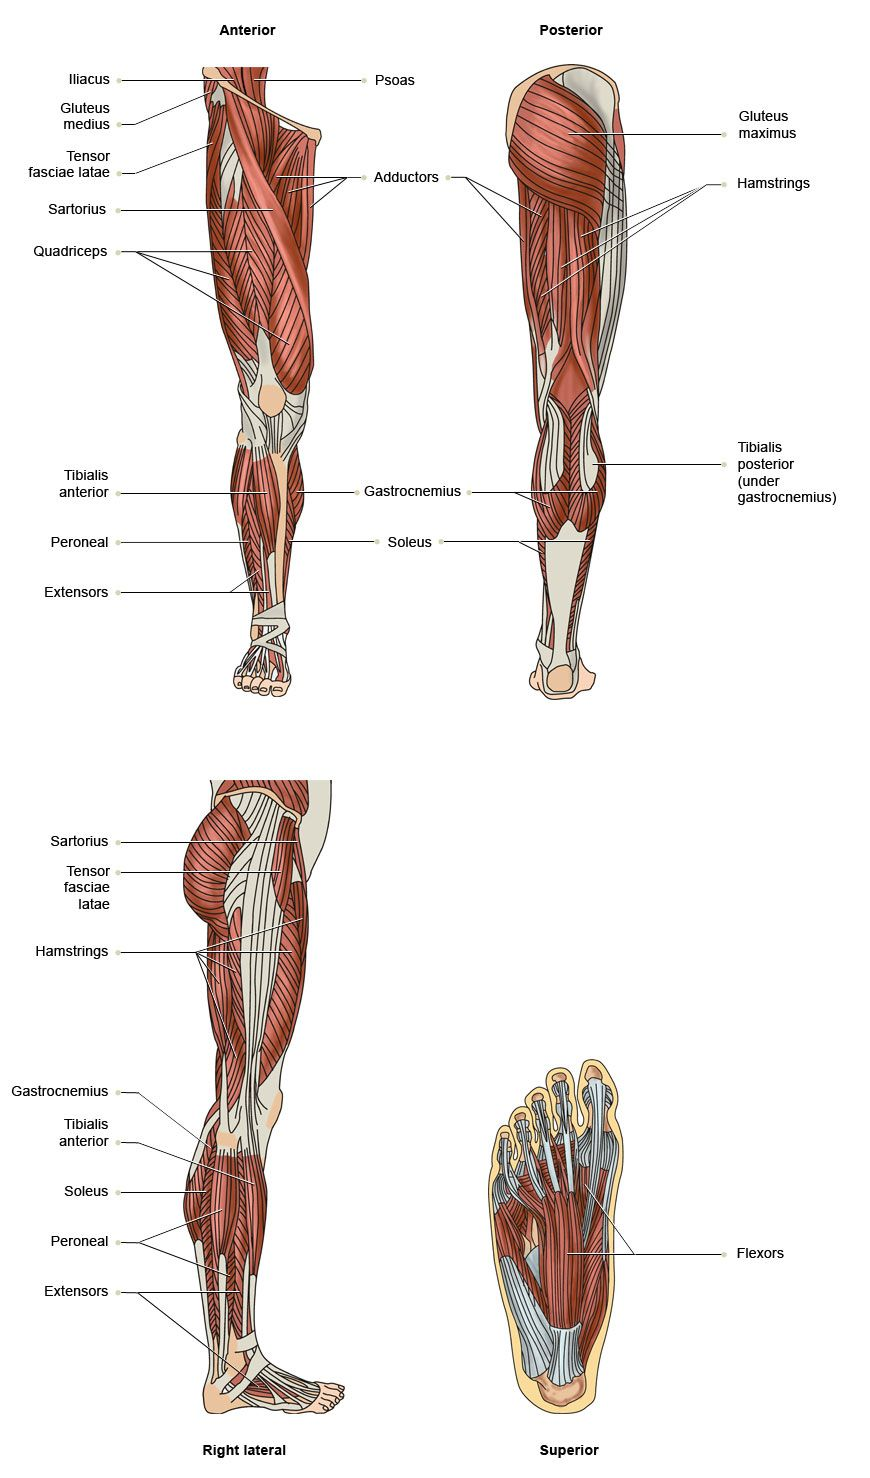 VTCT - The Muscles of the Lower Limbs | Anatomy & Physiology ...